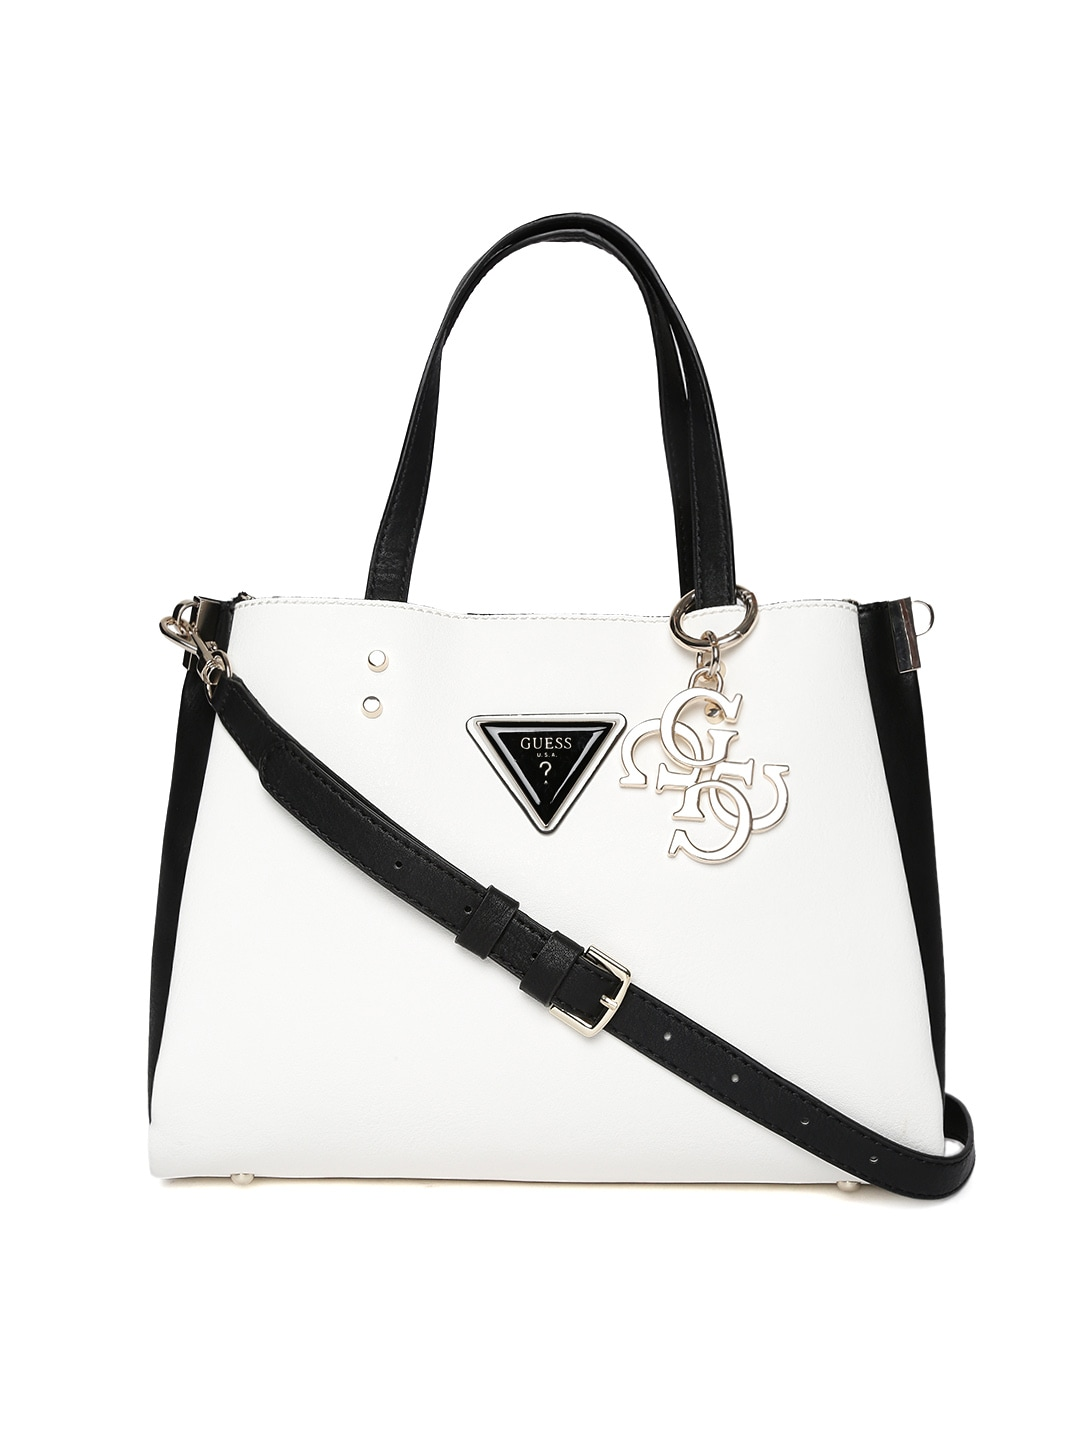 Guess Bags - Buy Guess Bags for Women Online - Myntra 2fa056a73fb01